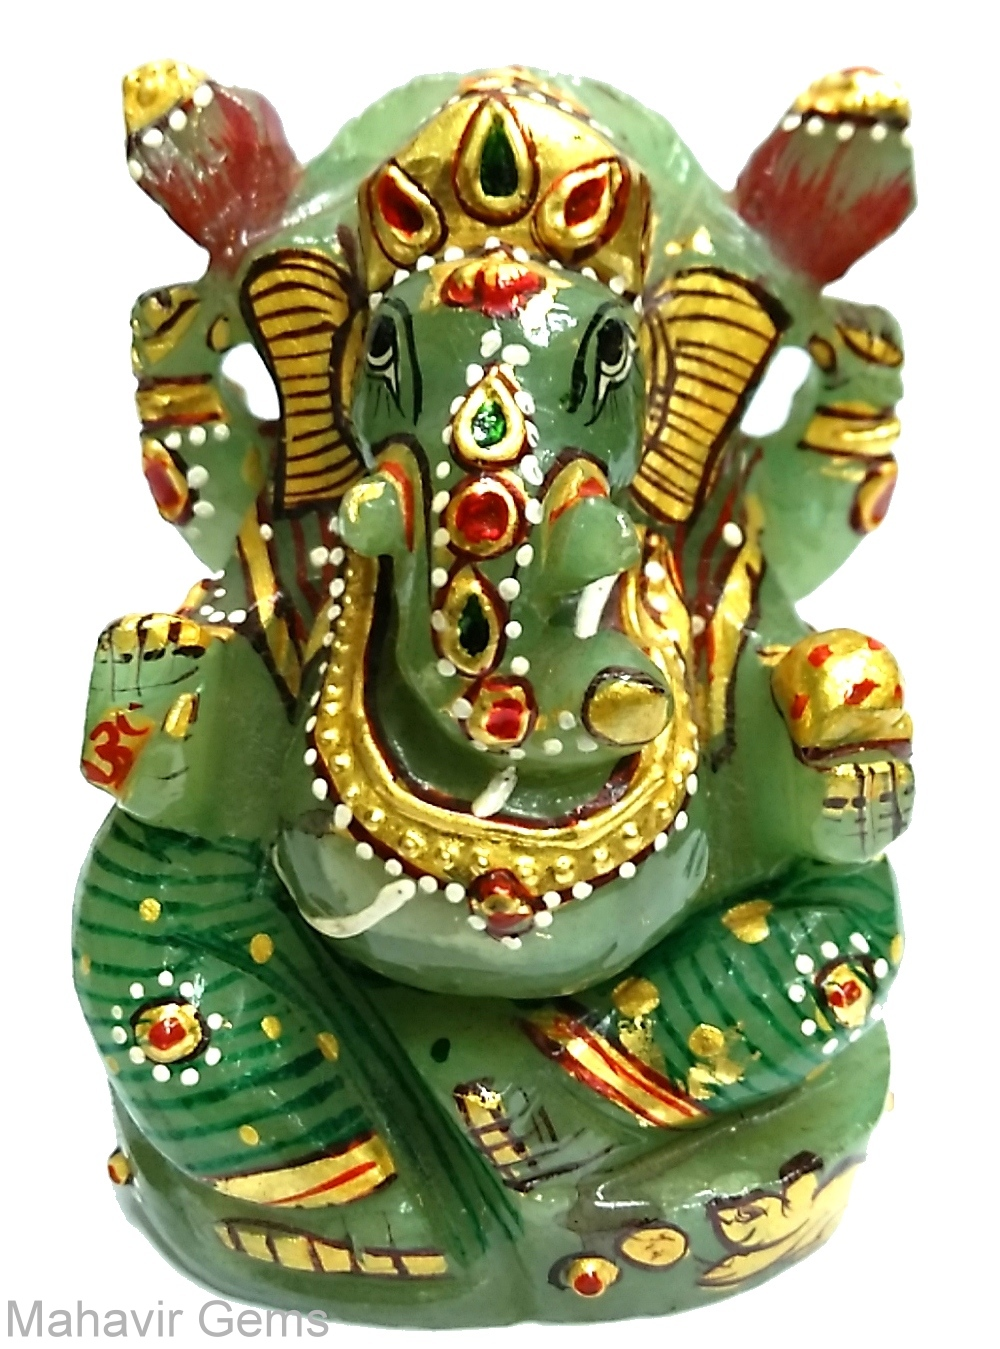 http://www.mahavirgems.in/Carving/Ganesha/Ganesha-Serpantine-Gemstone-1075Carats